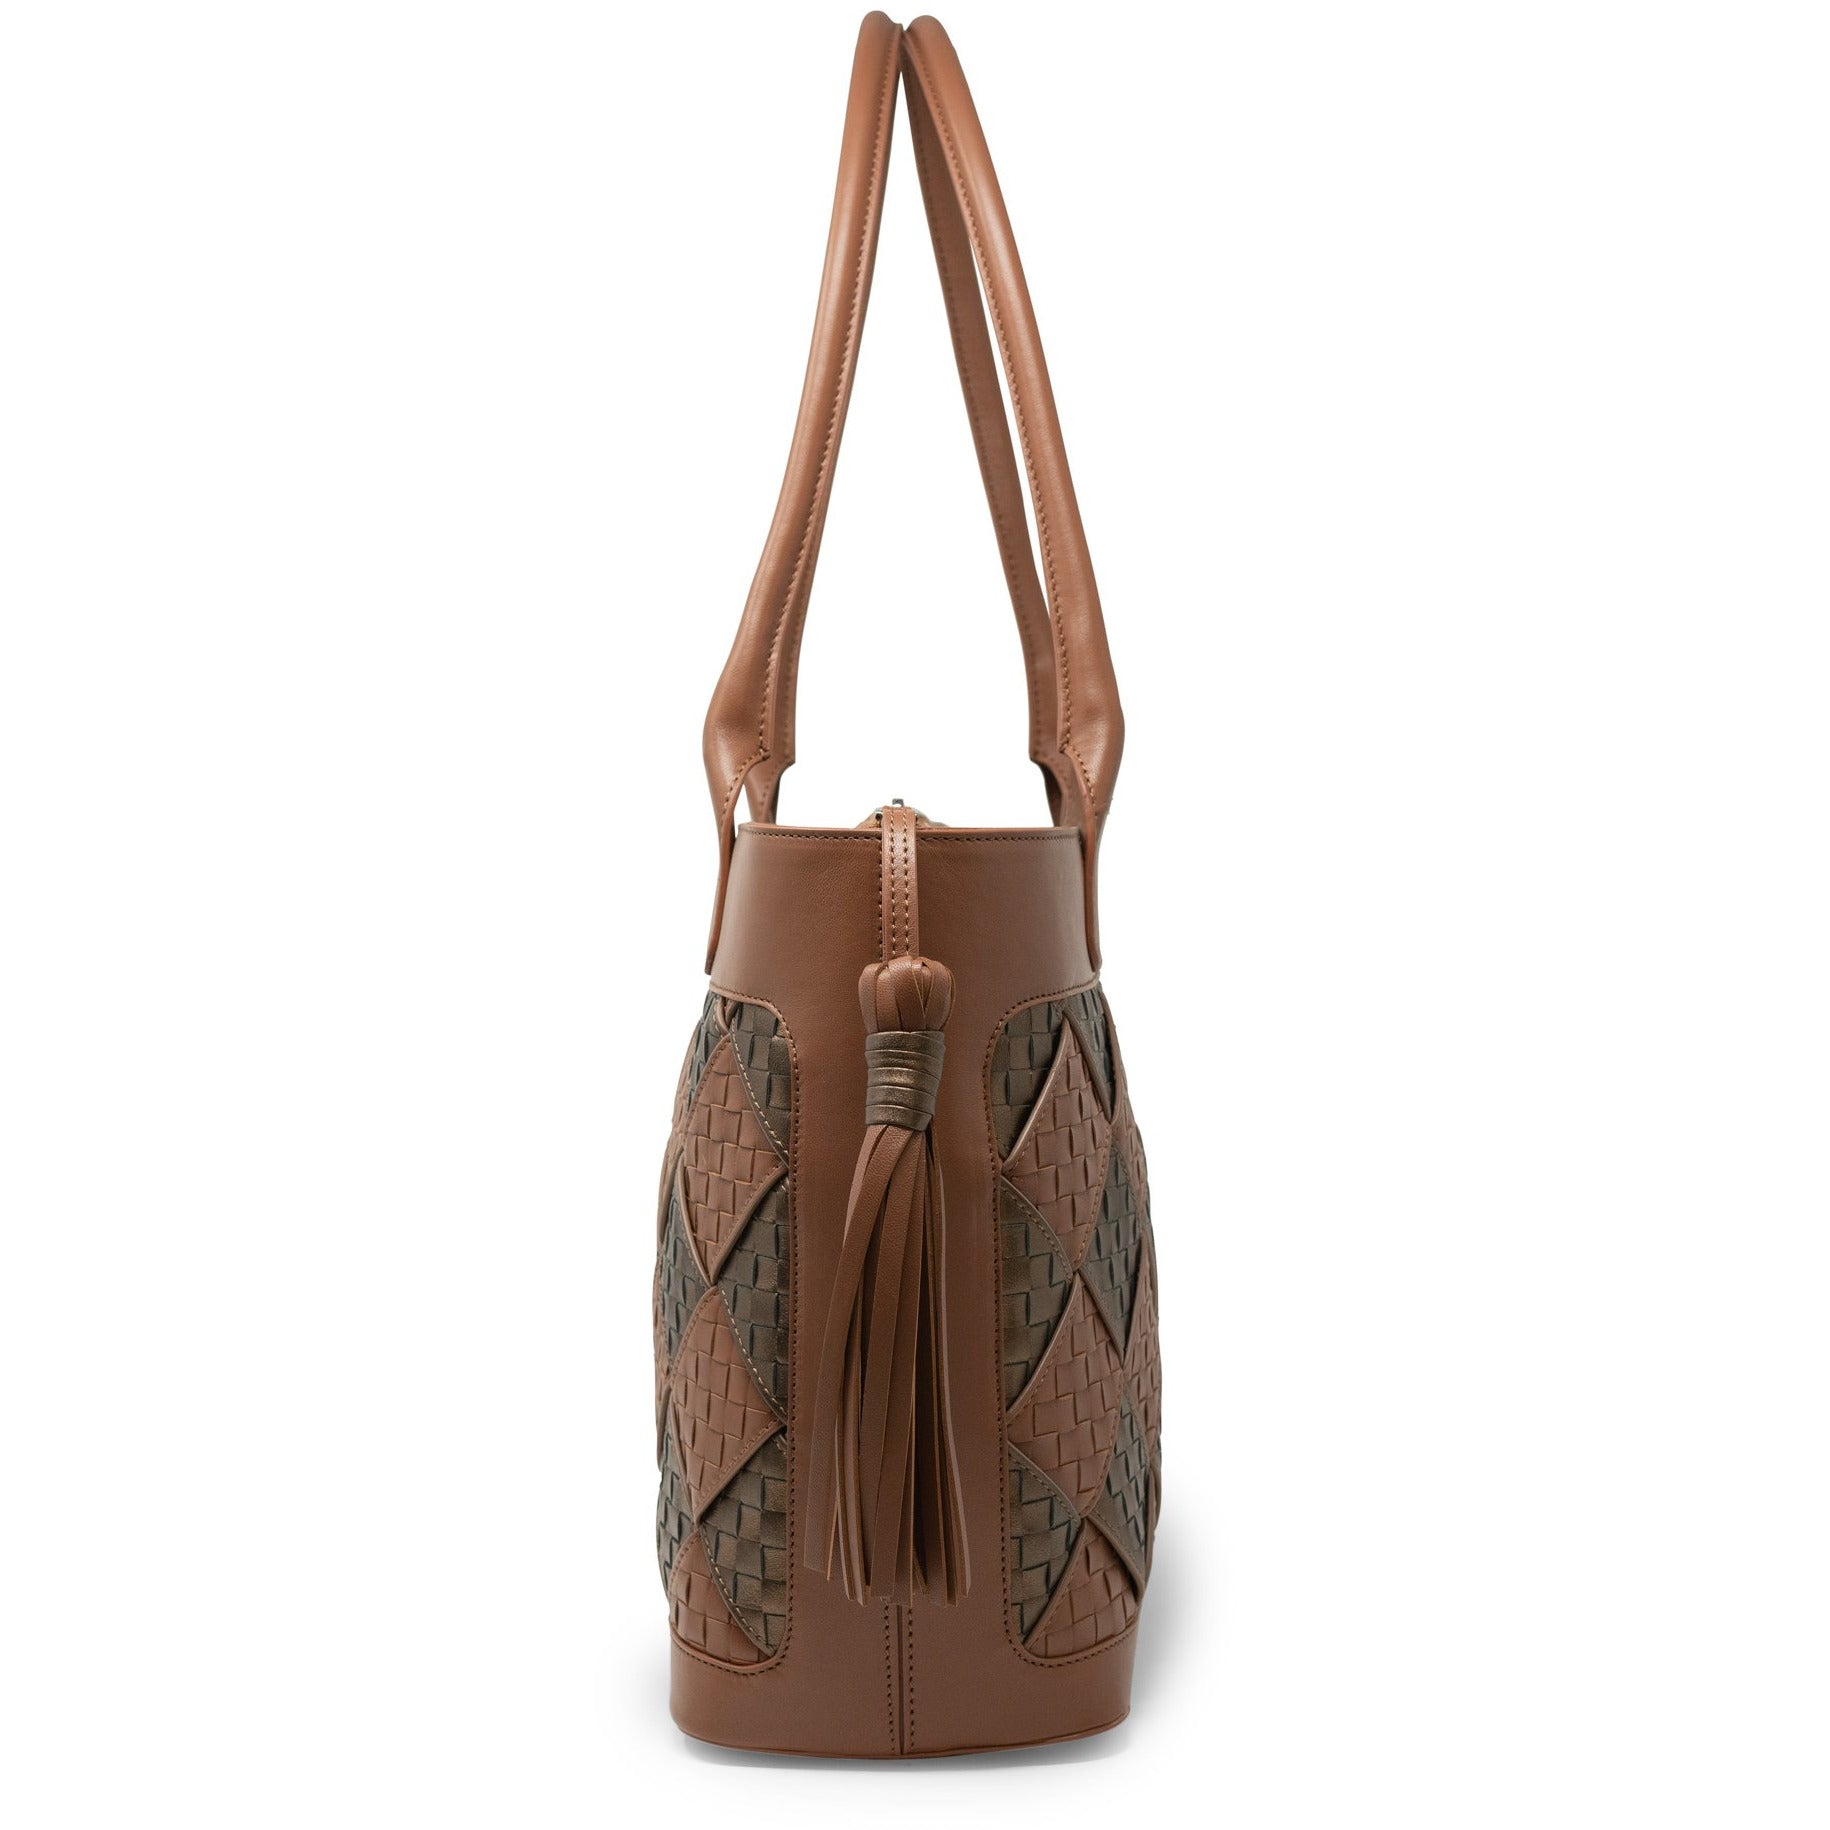 JT317 5570 33 Leather Intrecciato Bold Tote Bag - New Spring Summer 2020 Collection